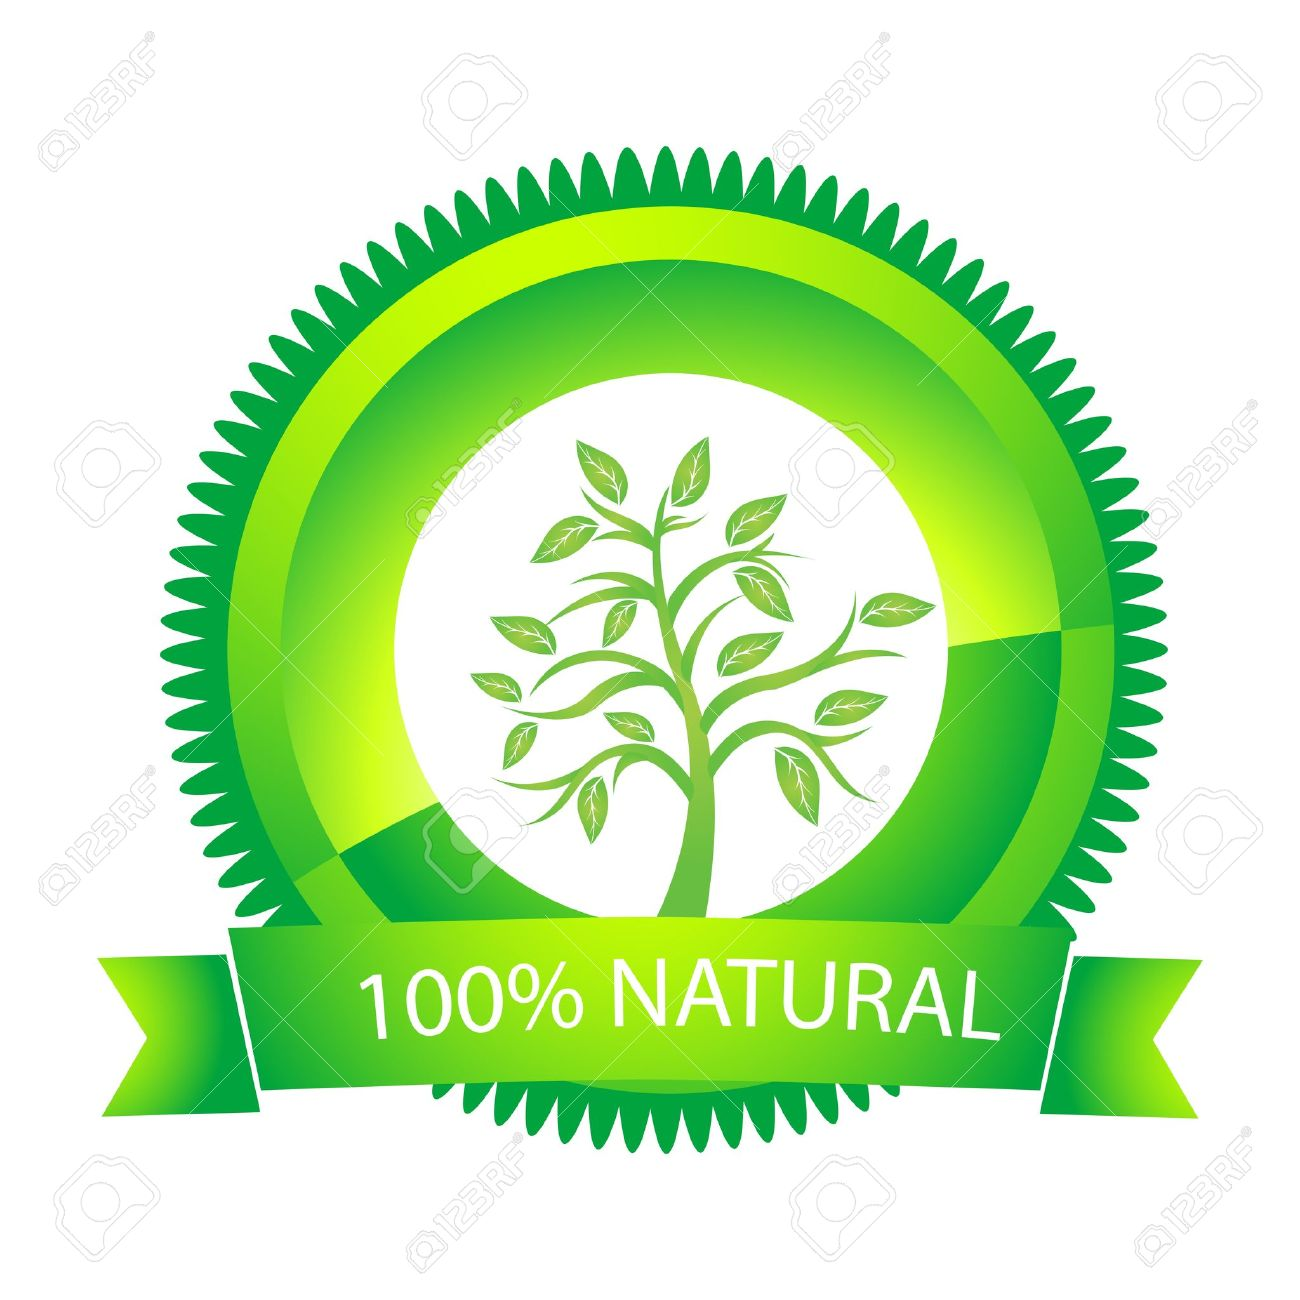 illustration of 100% natural tag on white background - 9438482